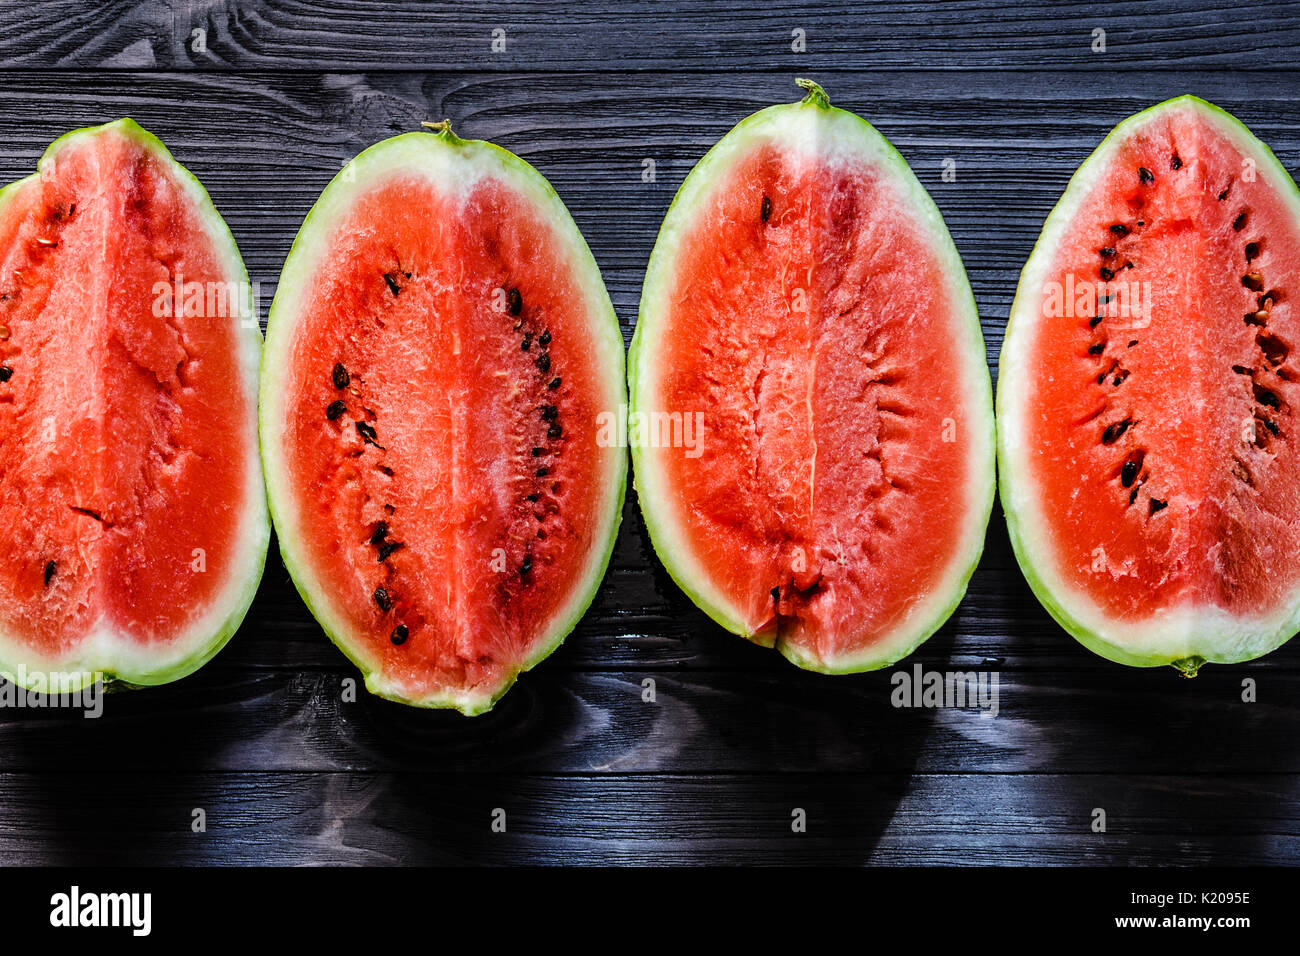 Background of fresh ripe watermelon slices on black wooden table. Top view. - Stock Image